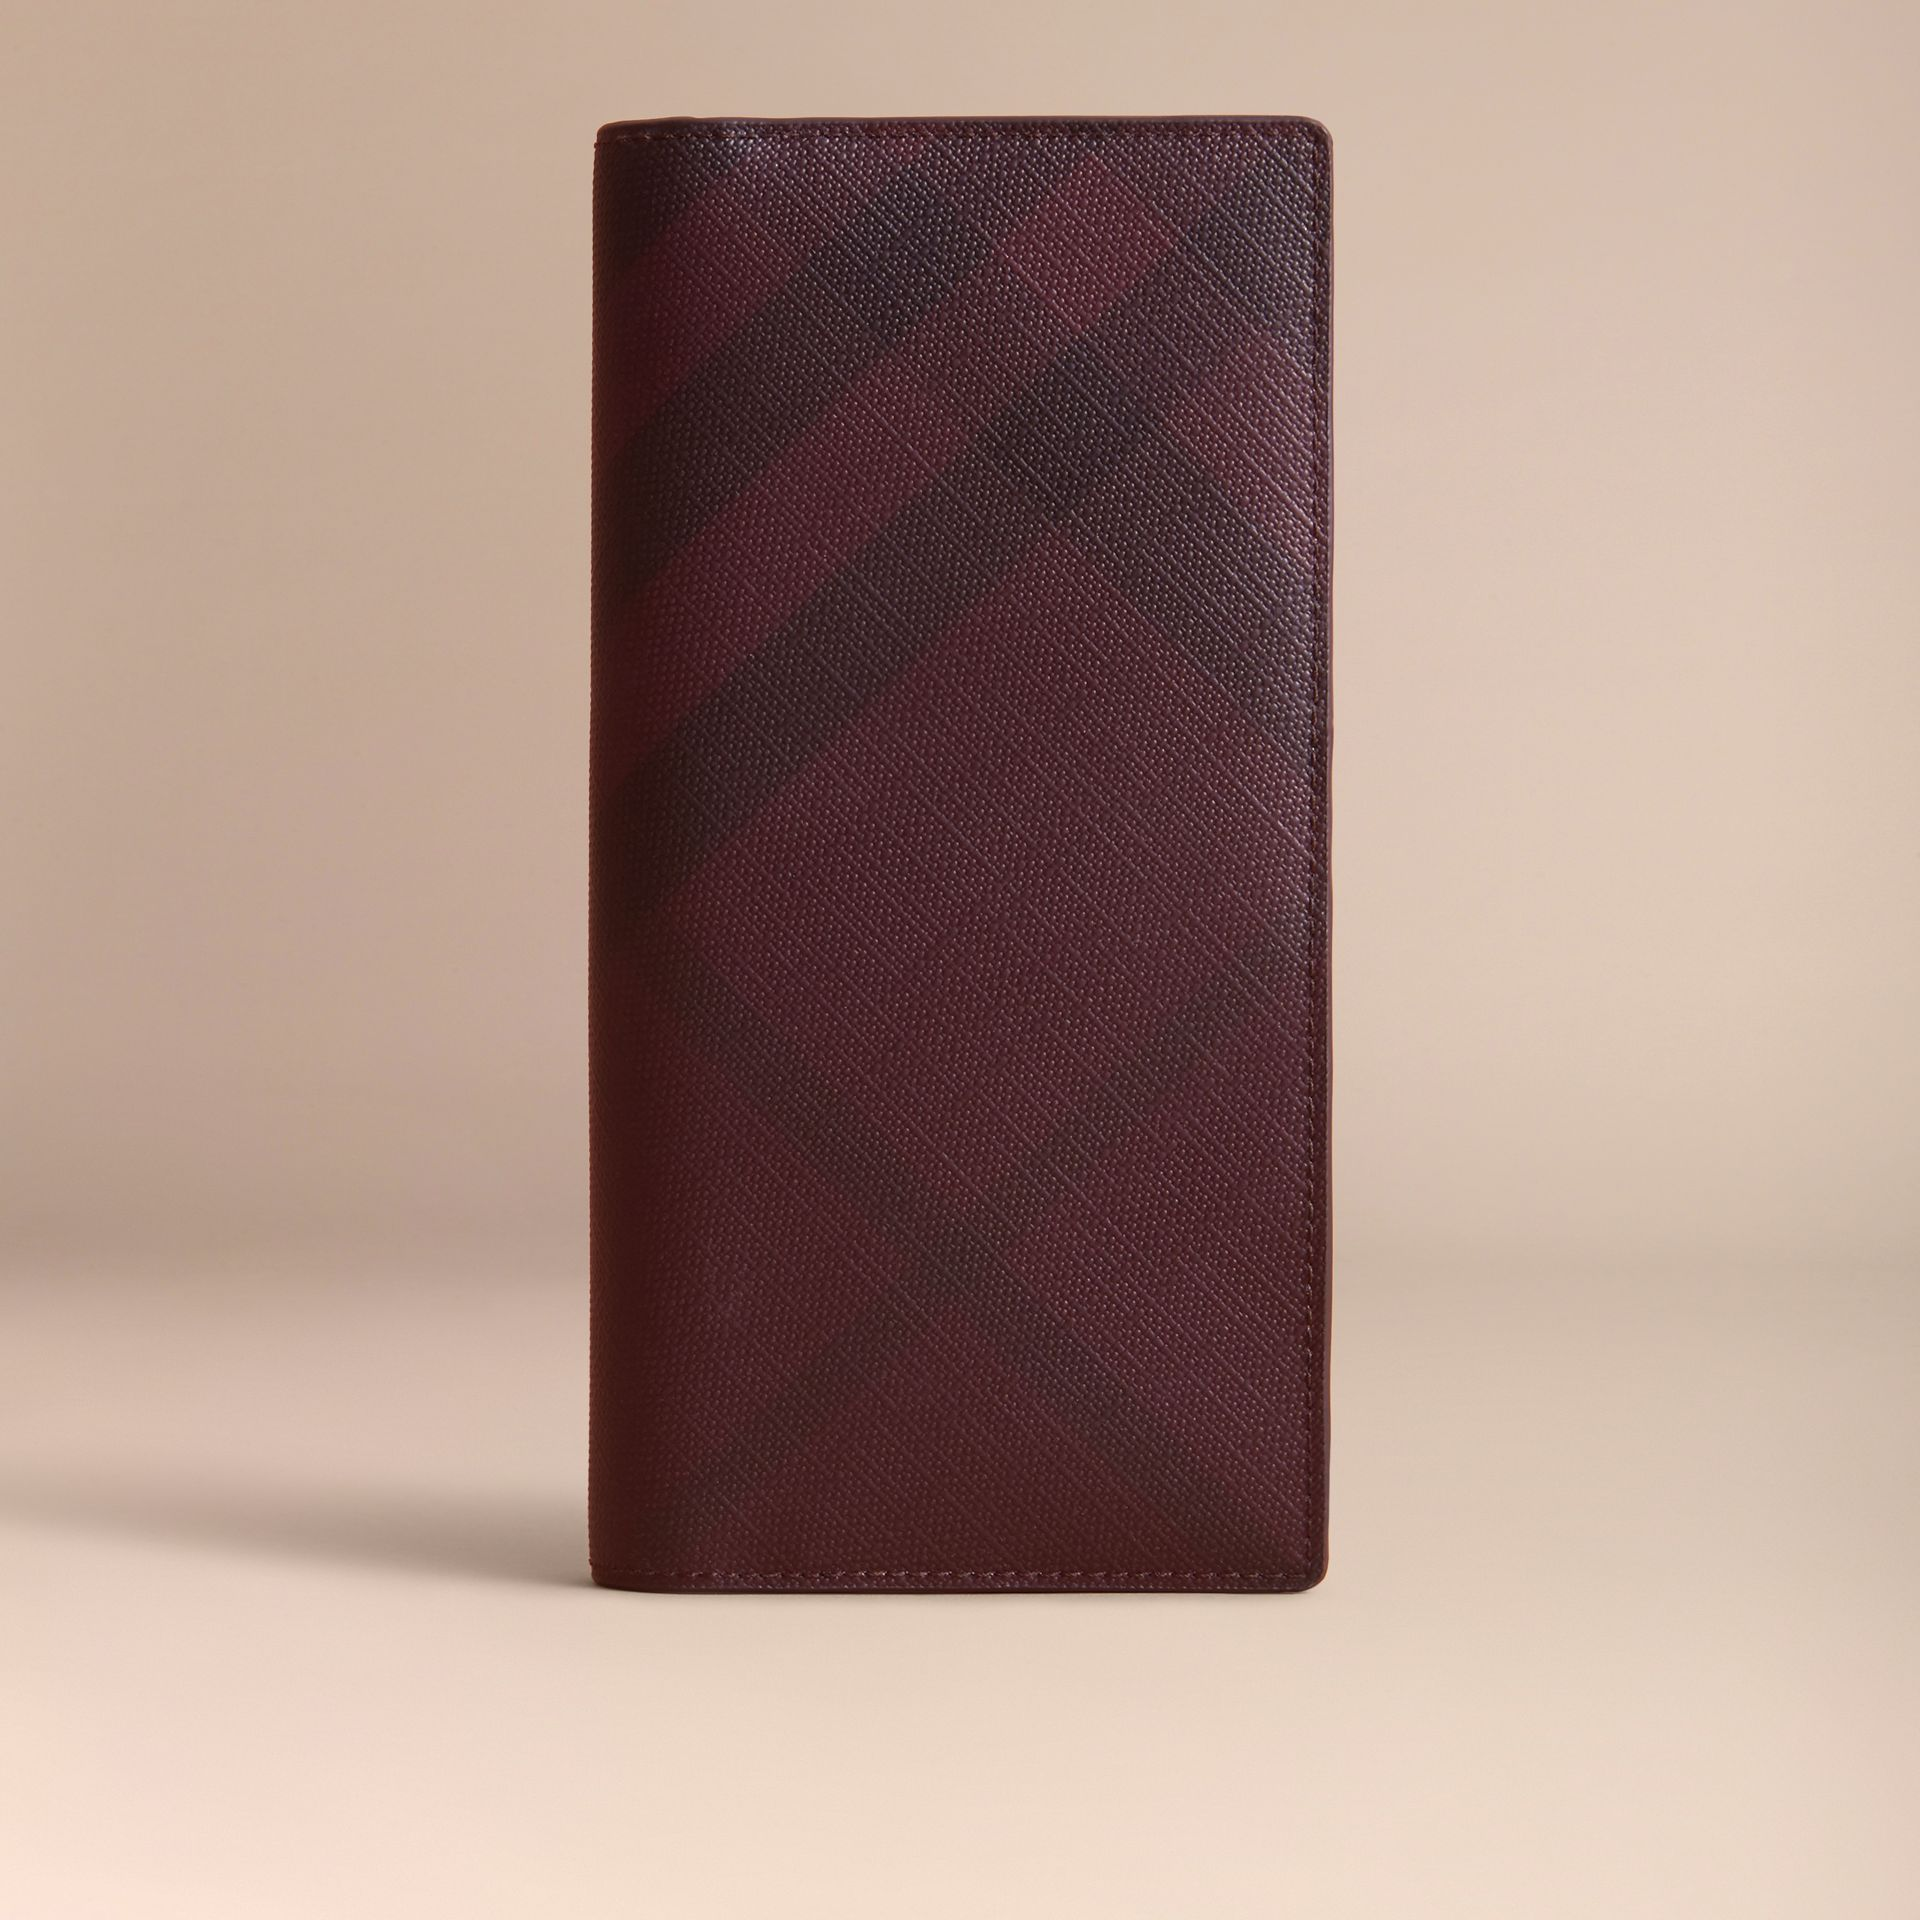 Portefeuille continental en tissu London check et cuir (Bordeaux Intense) - Homme | Burberry - photo de la galerie 6